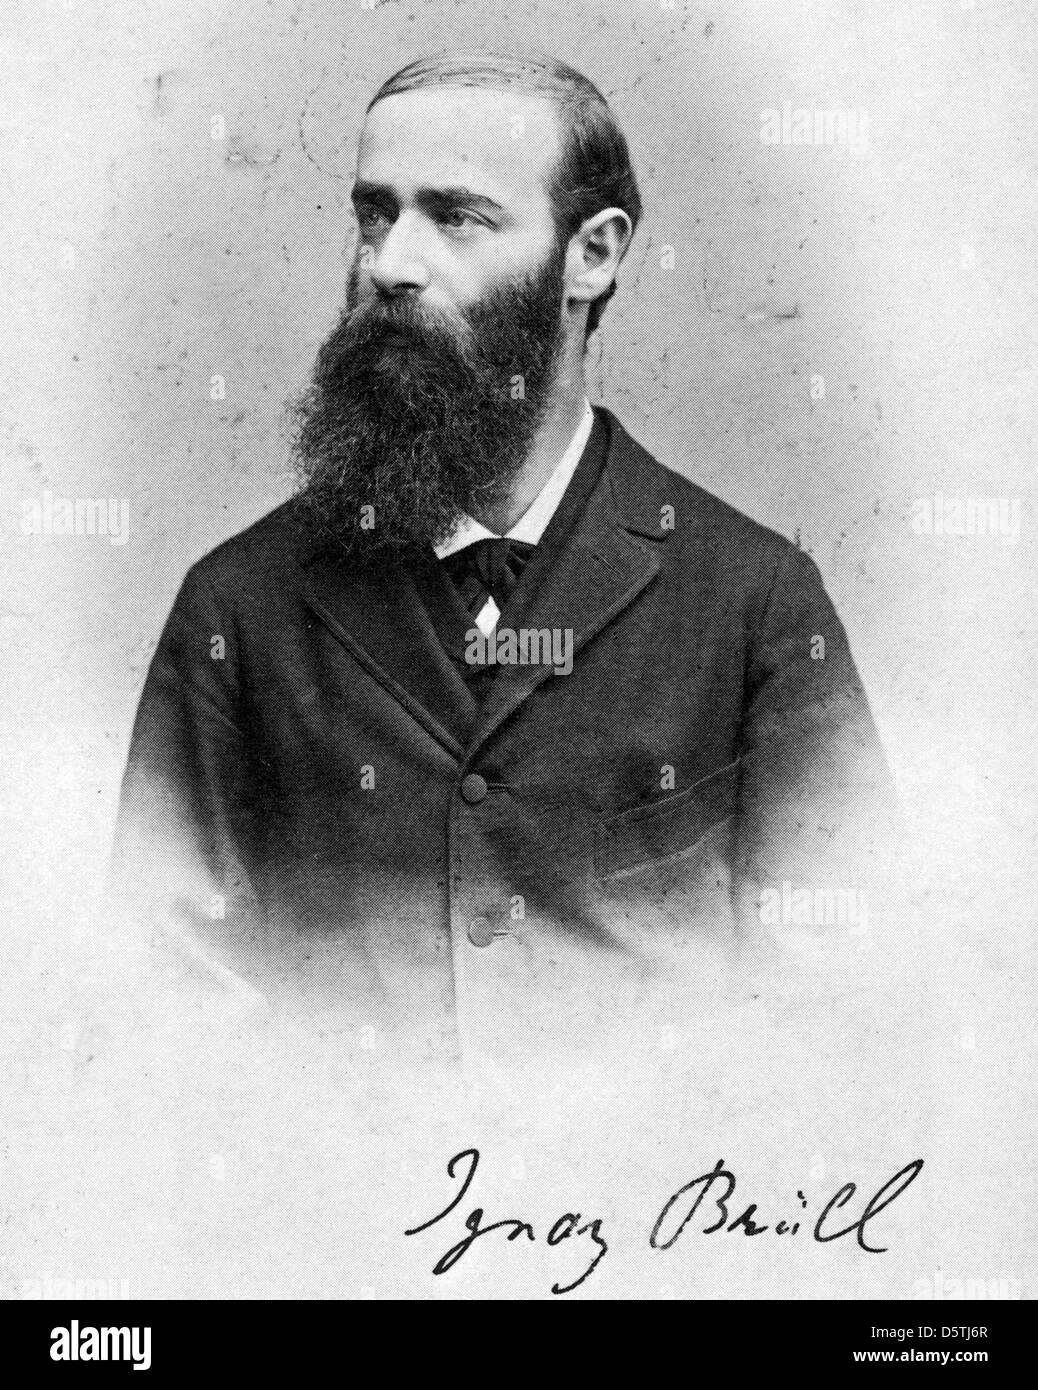 IGNAZ BRUHLL  (1846-1907) Moravian-born pianist and composer - Stock Image